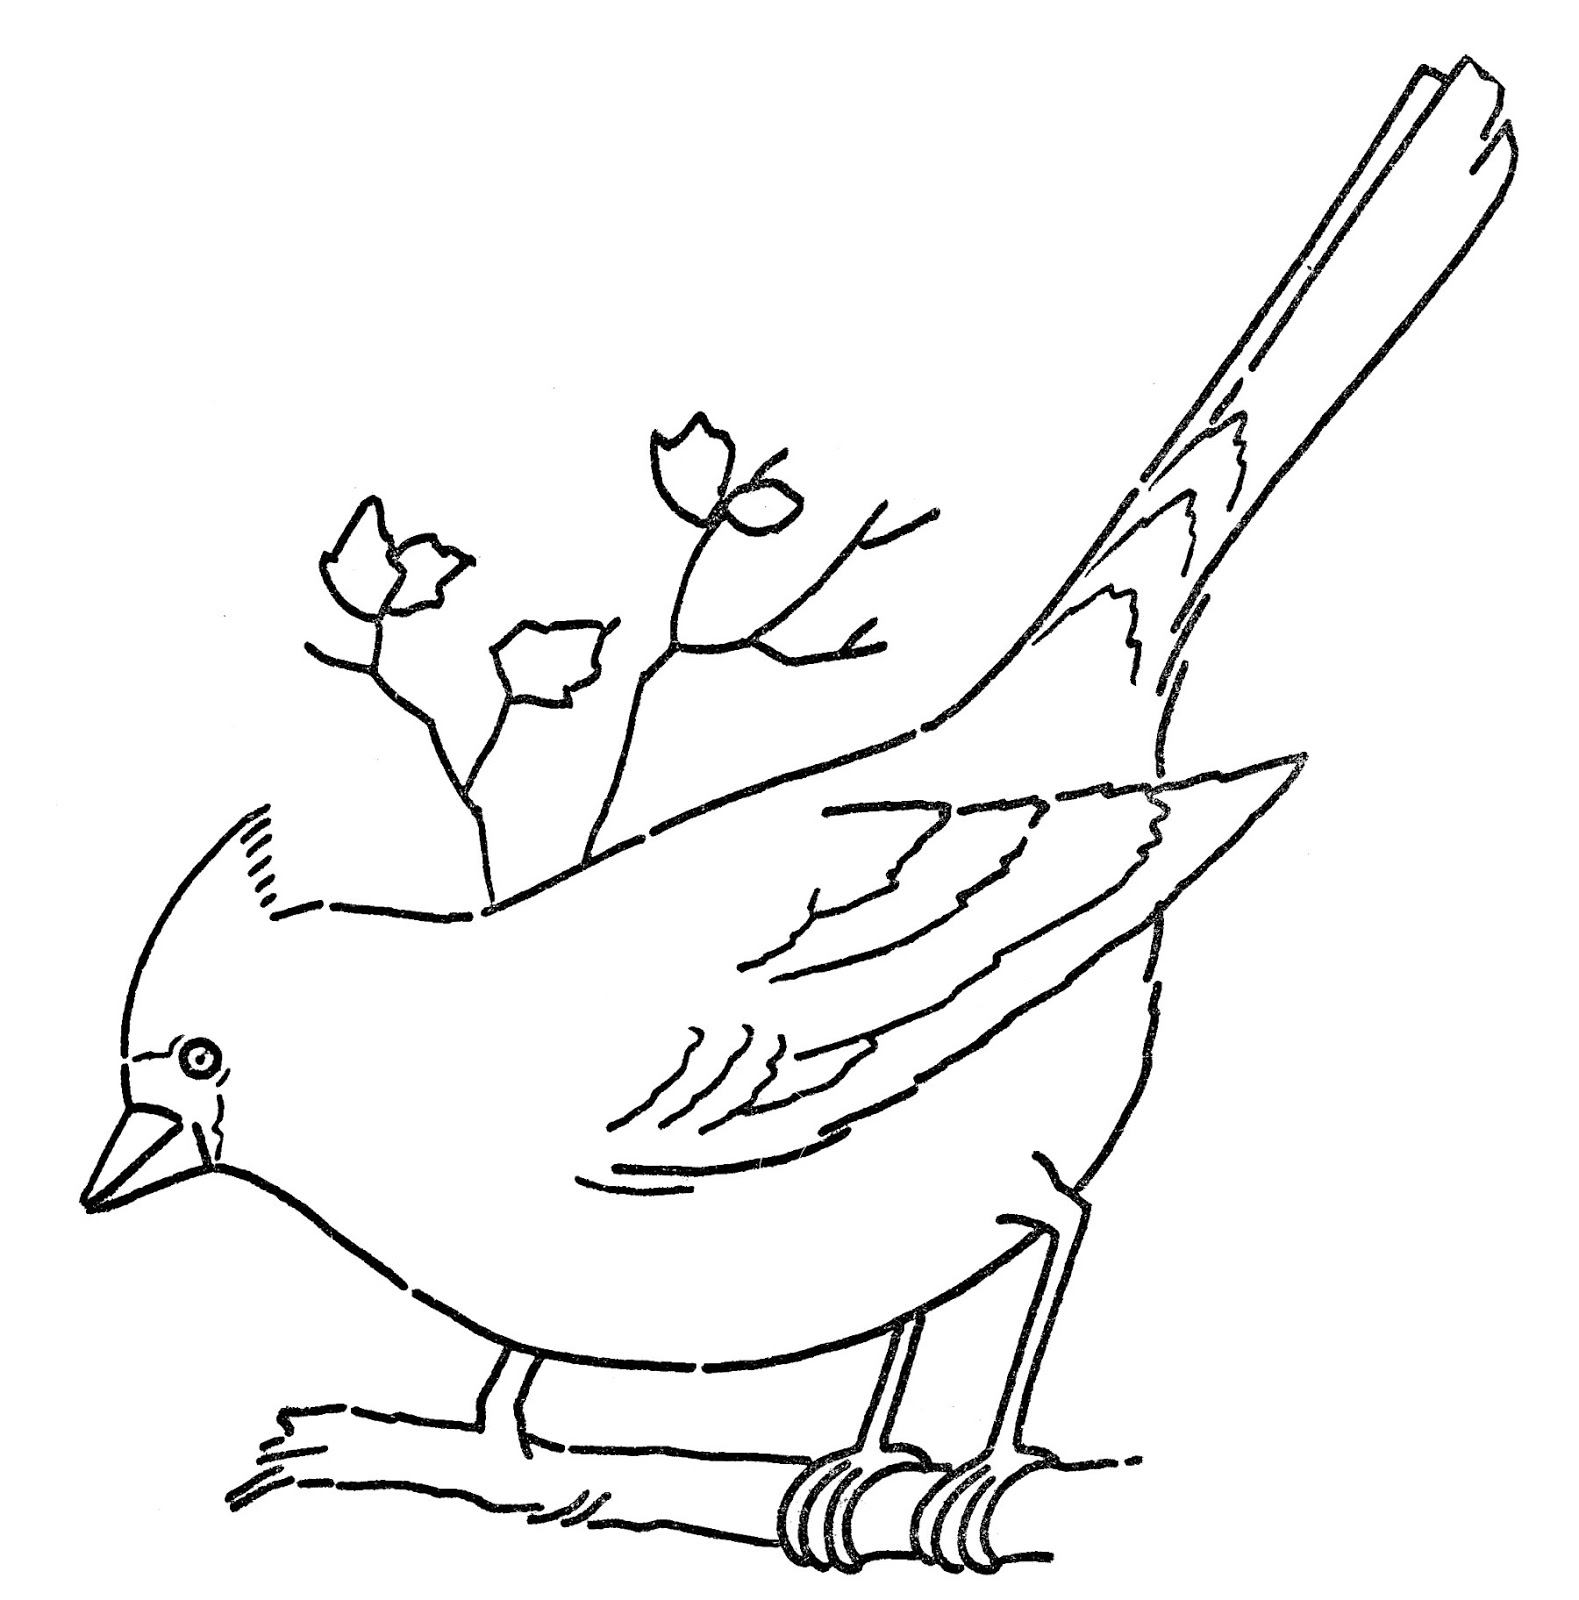 Cardinal clipart black and white. Line art coloring page